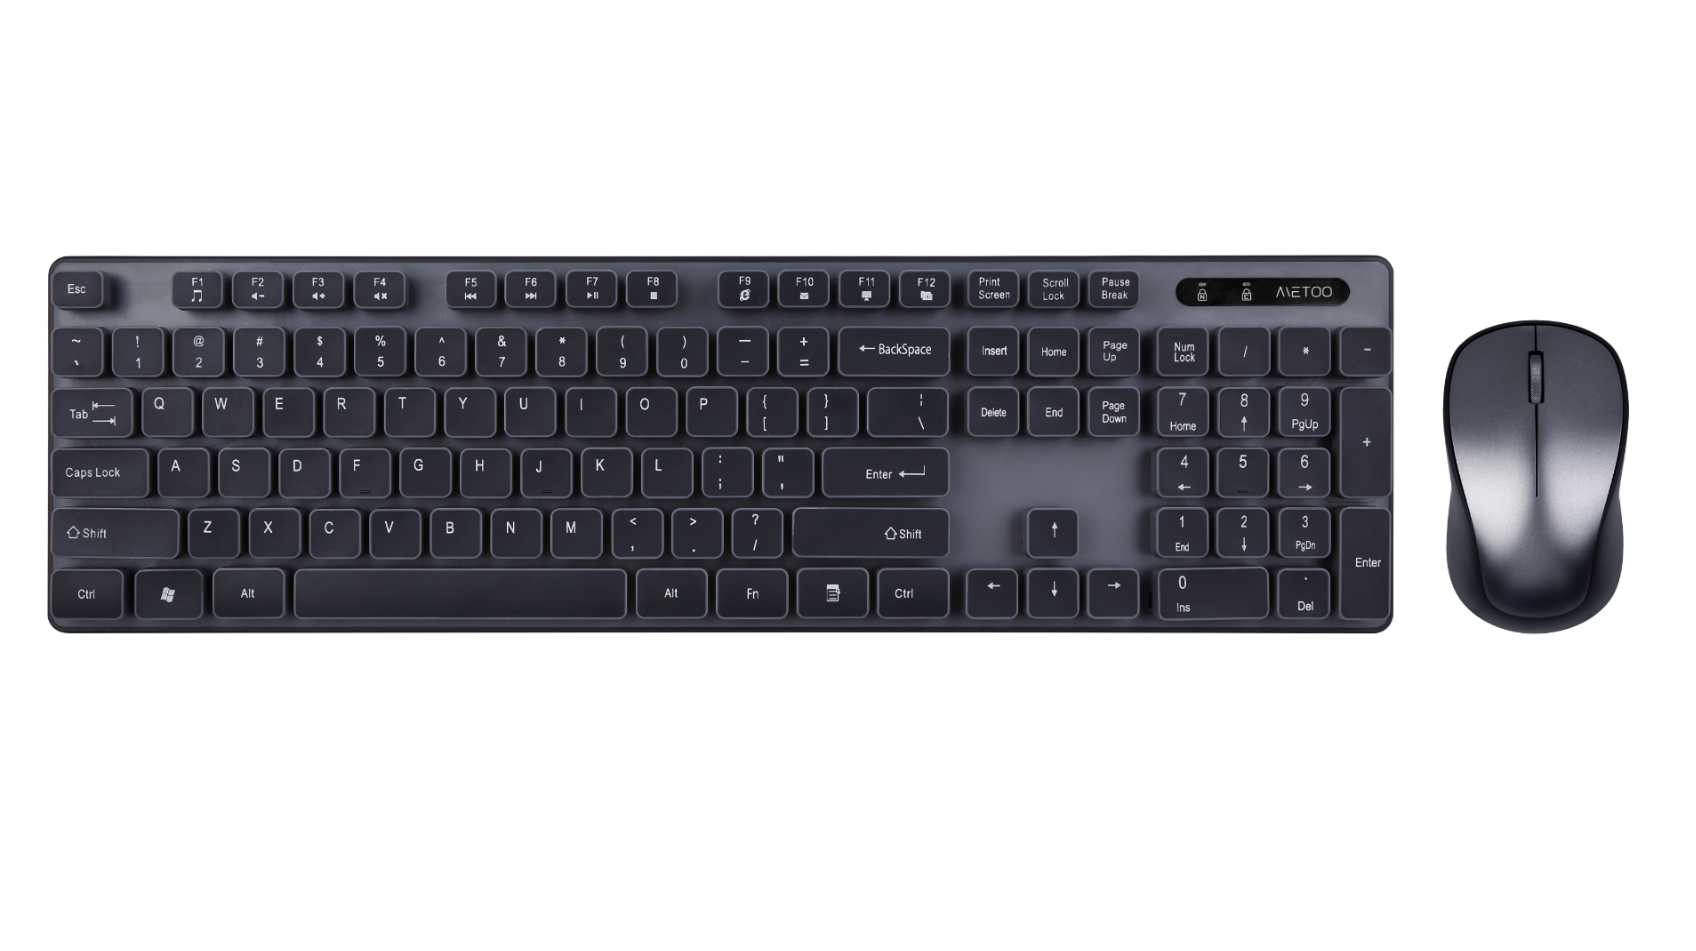 Metoo Wireless keyboard and mouse C500